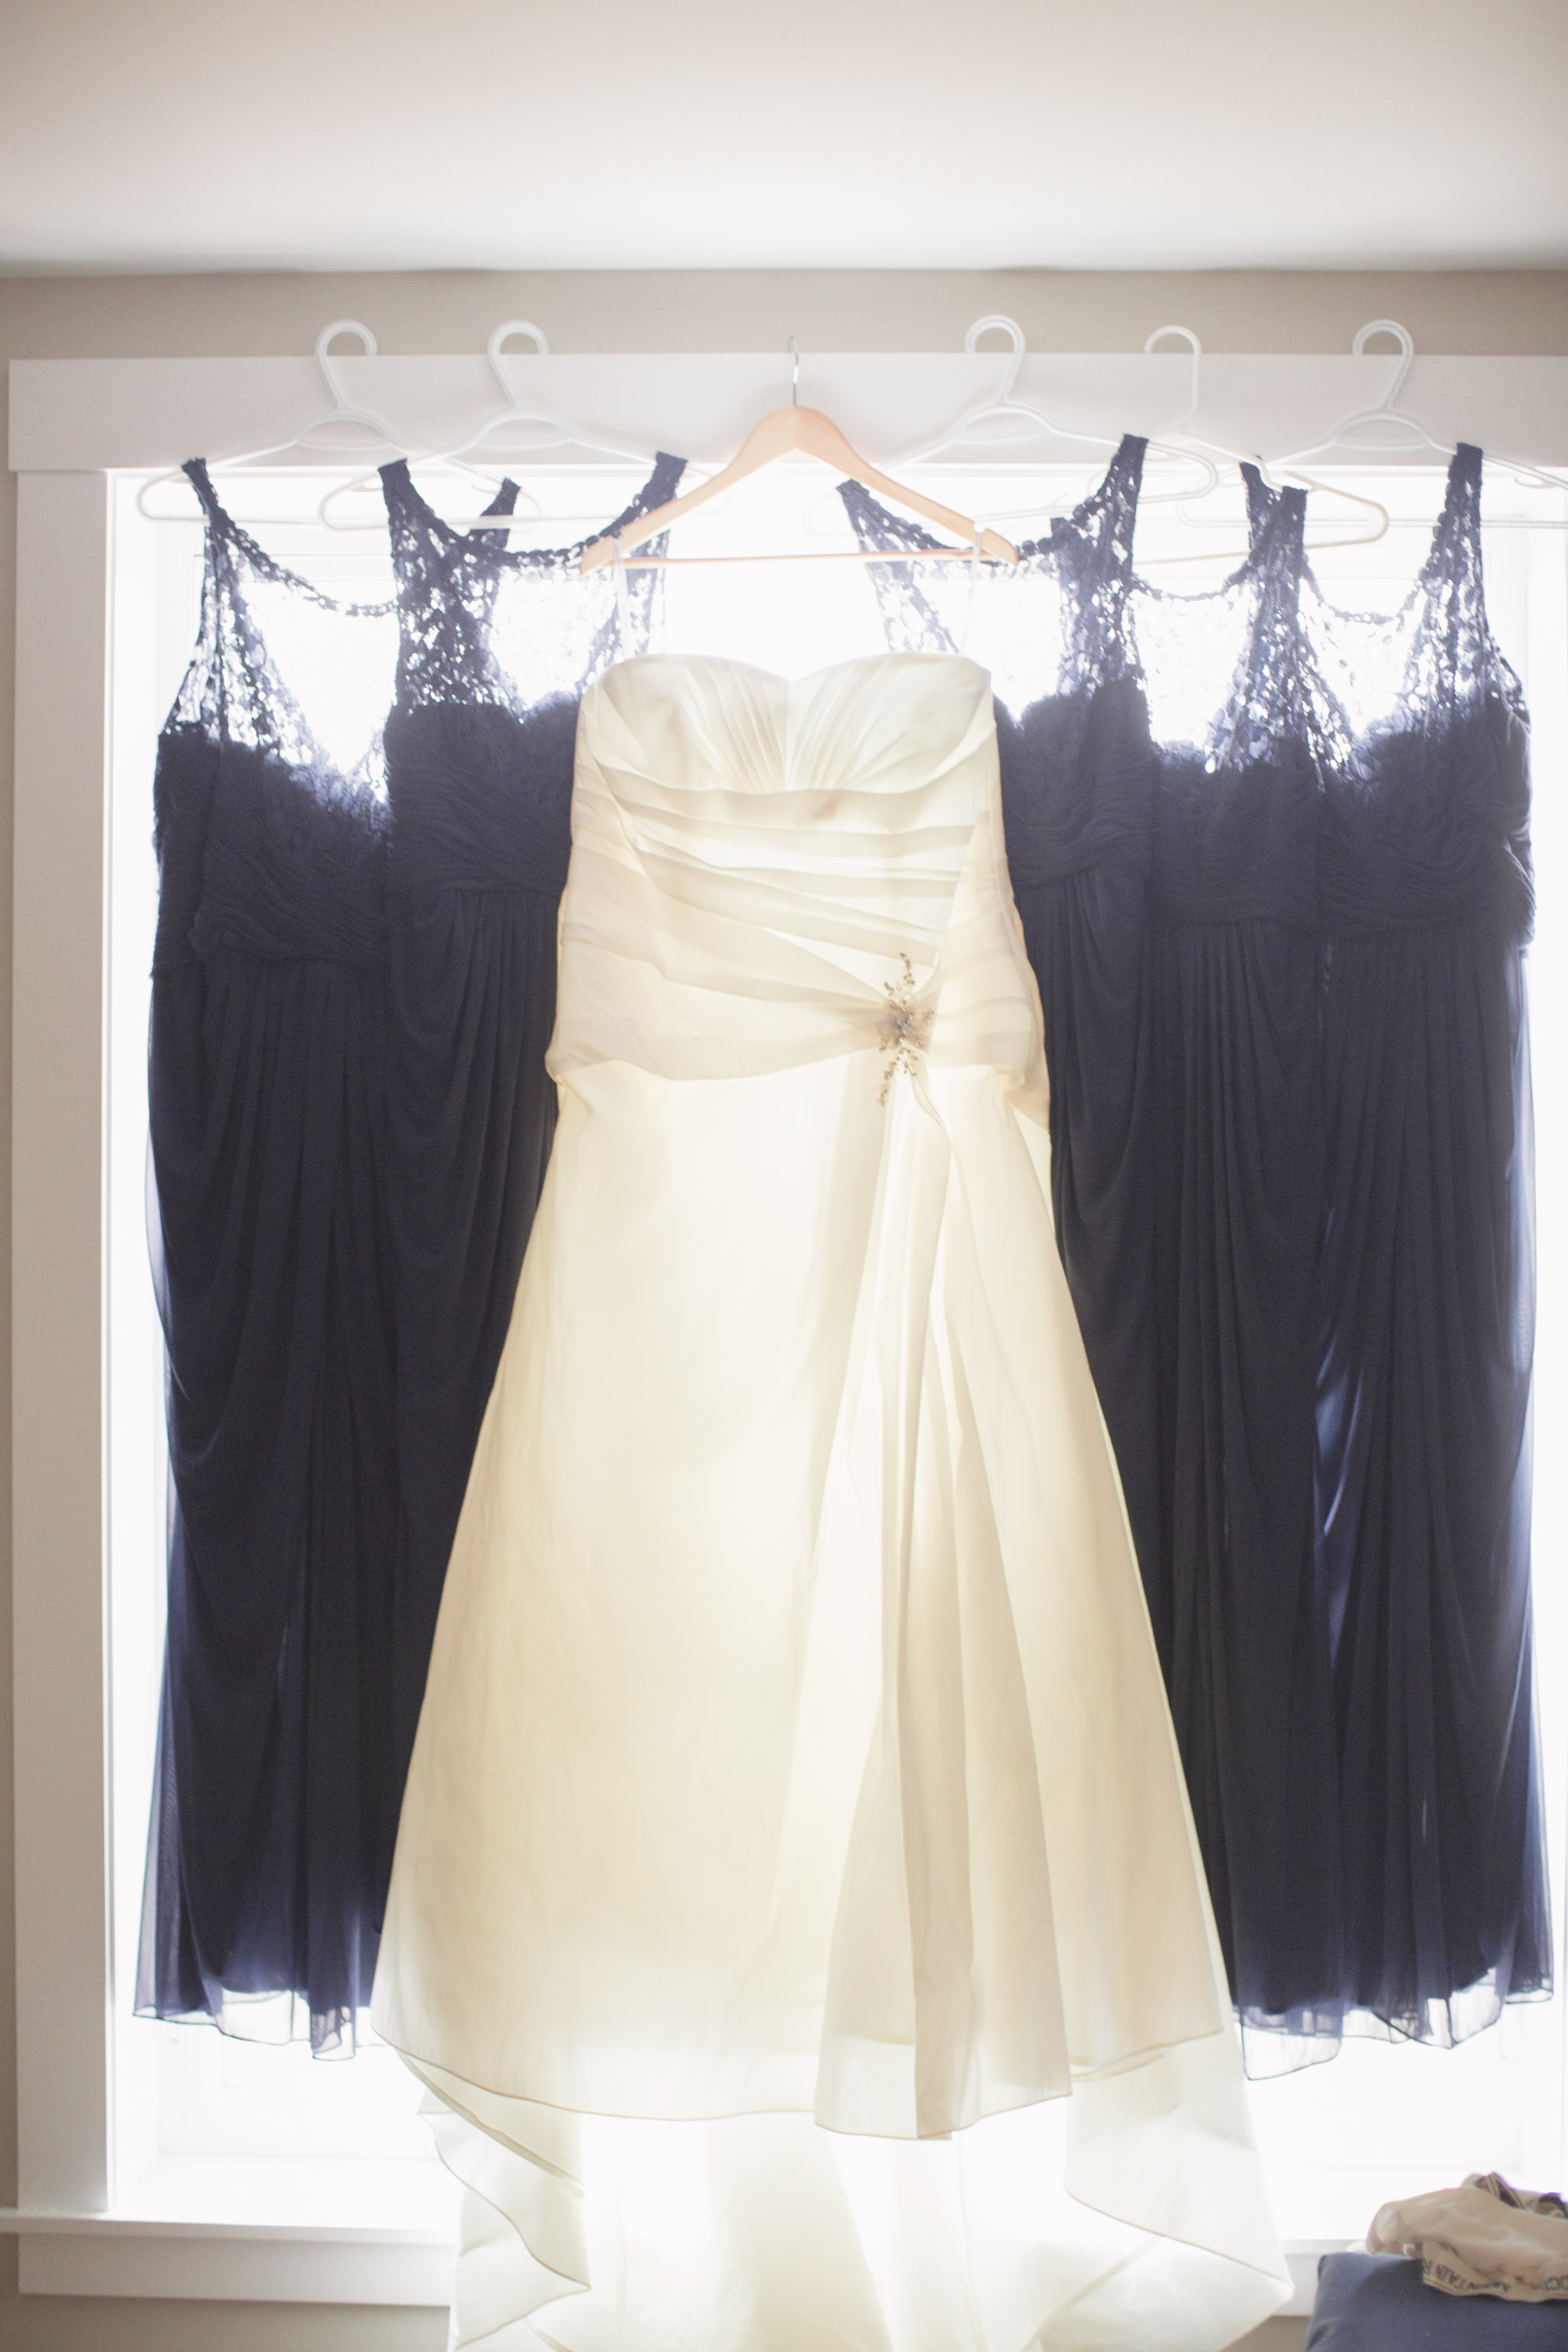 Image of one bridal dress and 5 blue bridesmaids dresses